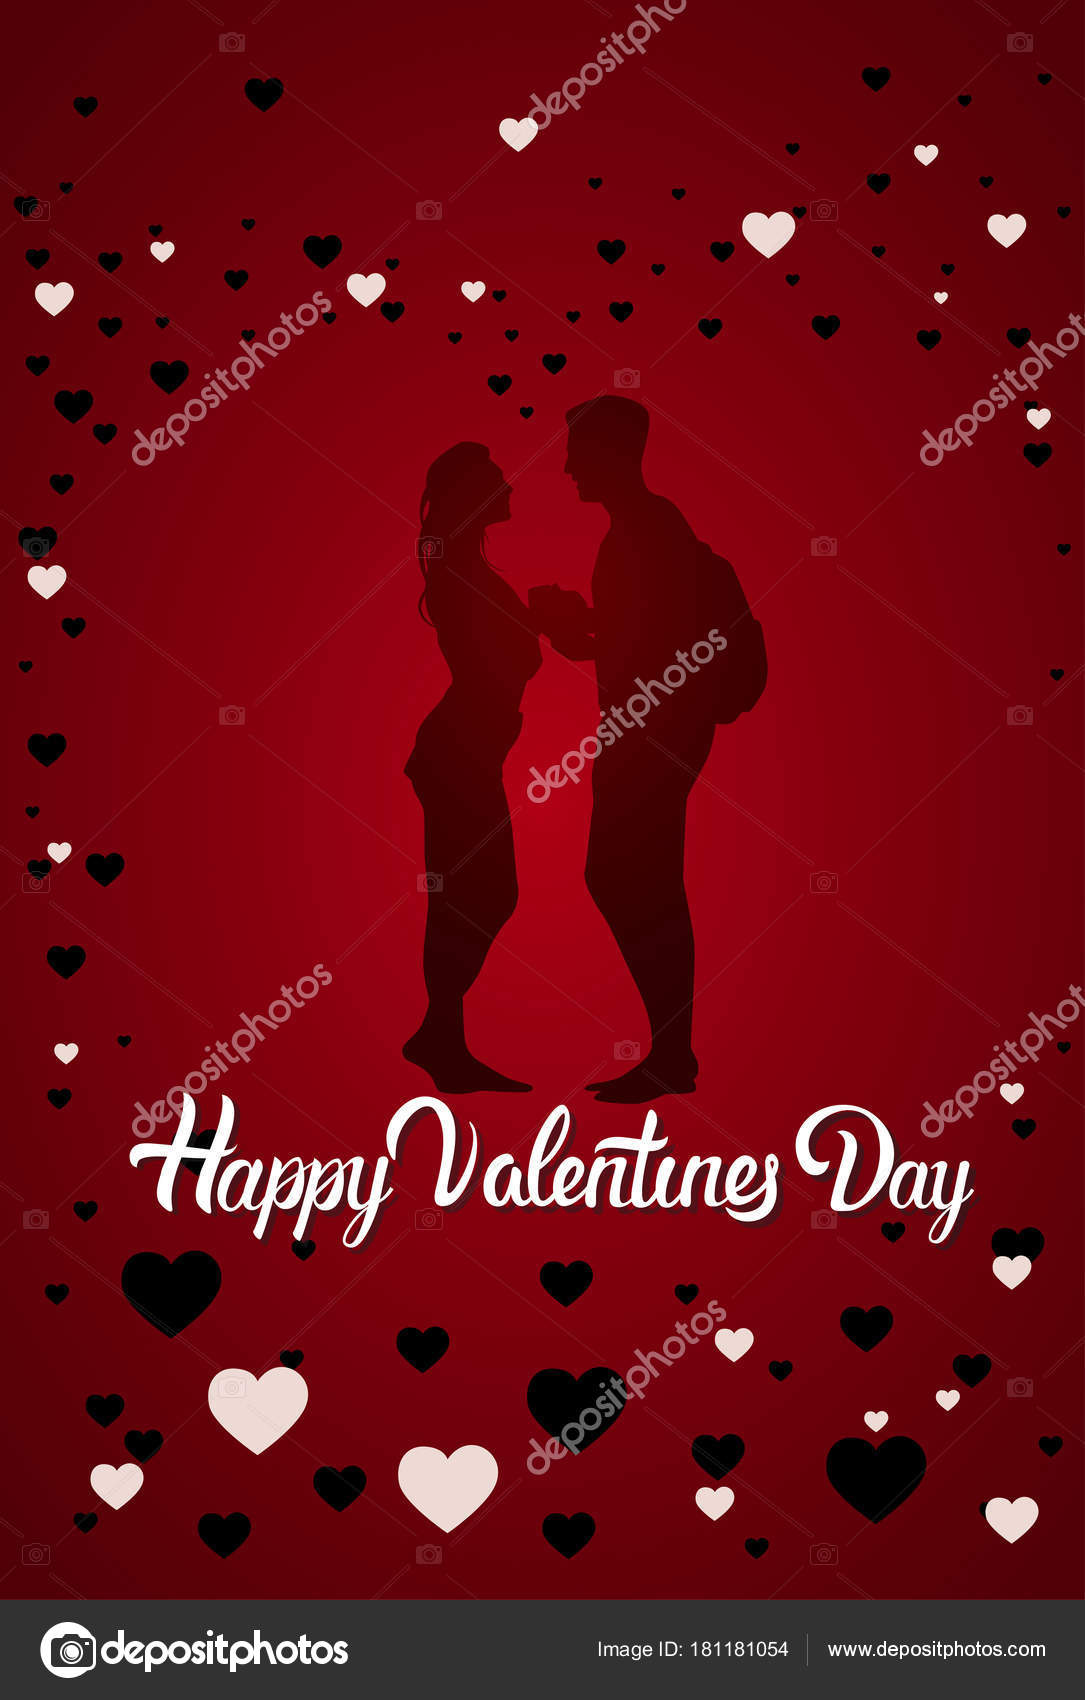 Couple silhouette happy valentine day greeting card background couple silhouette happy valentine day greeting card background flat vector illustration vector by mast3r kristyandbryce Image collections